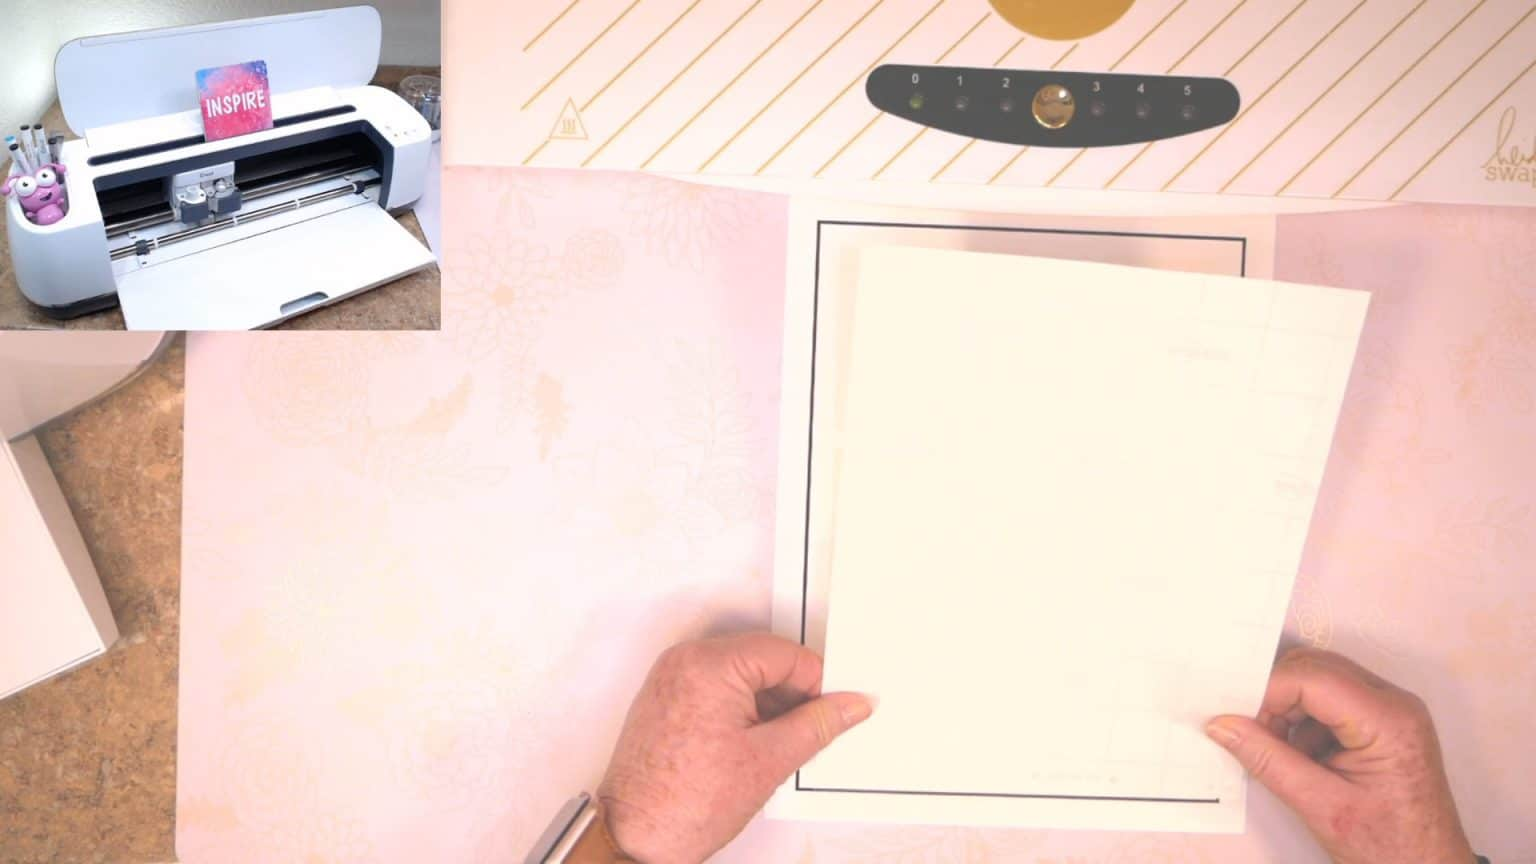 align waterproof sticker paper to the edge of the black line of your printer sticker sheet